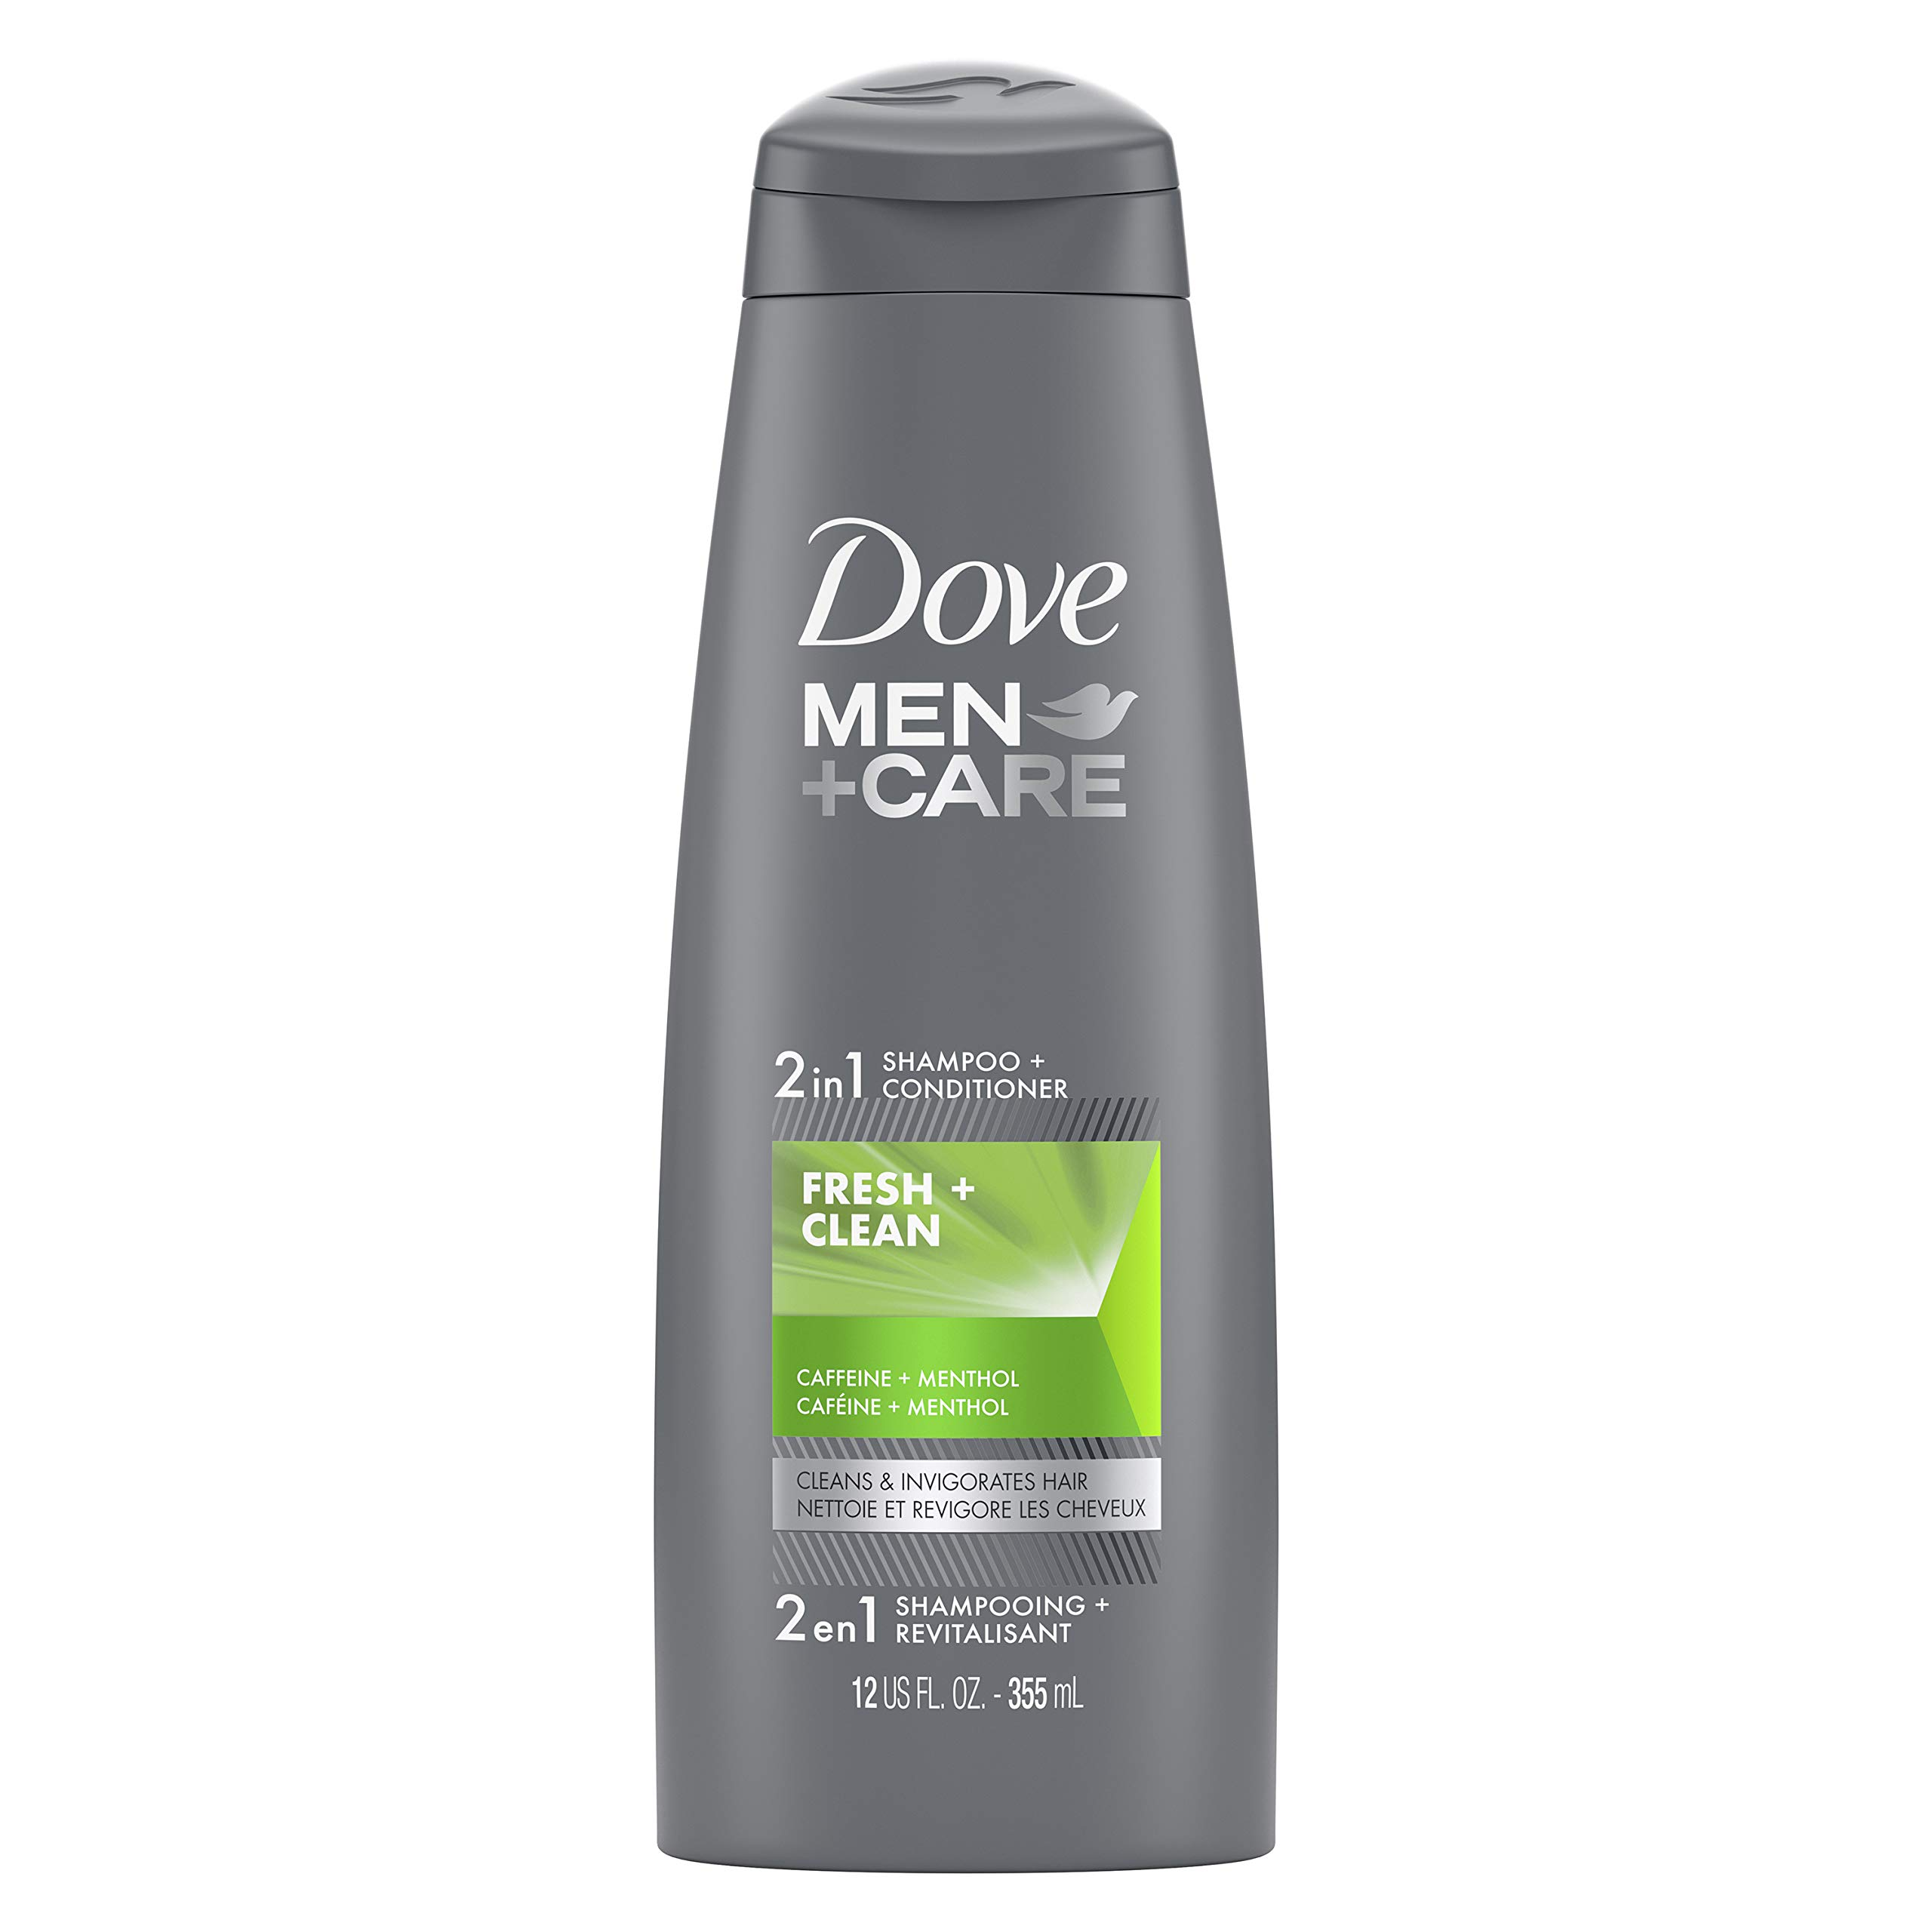 DOVE MEN + CARE Fortifying 2 in 1 Shampoo and Conditioner for Normal to Oily Hair Fresh and Clean with Caffeine Helps Strengthen and Nourish Hair 12 oz (26654)